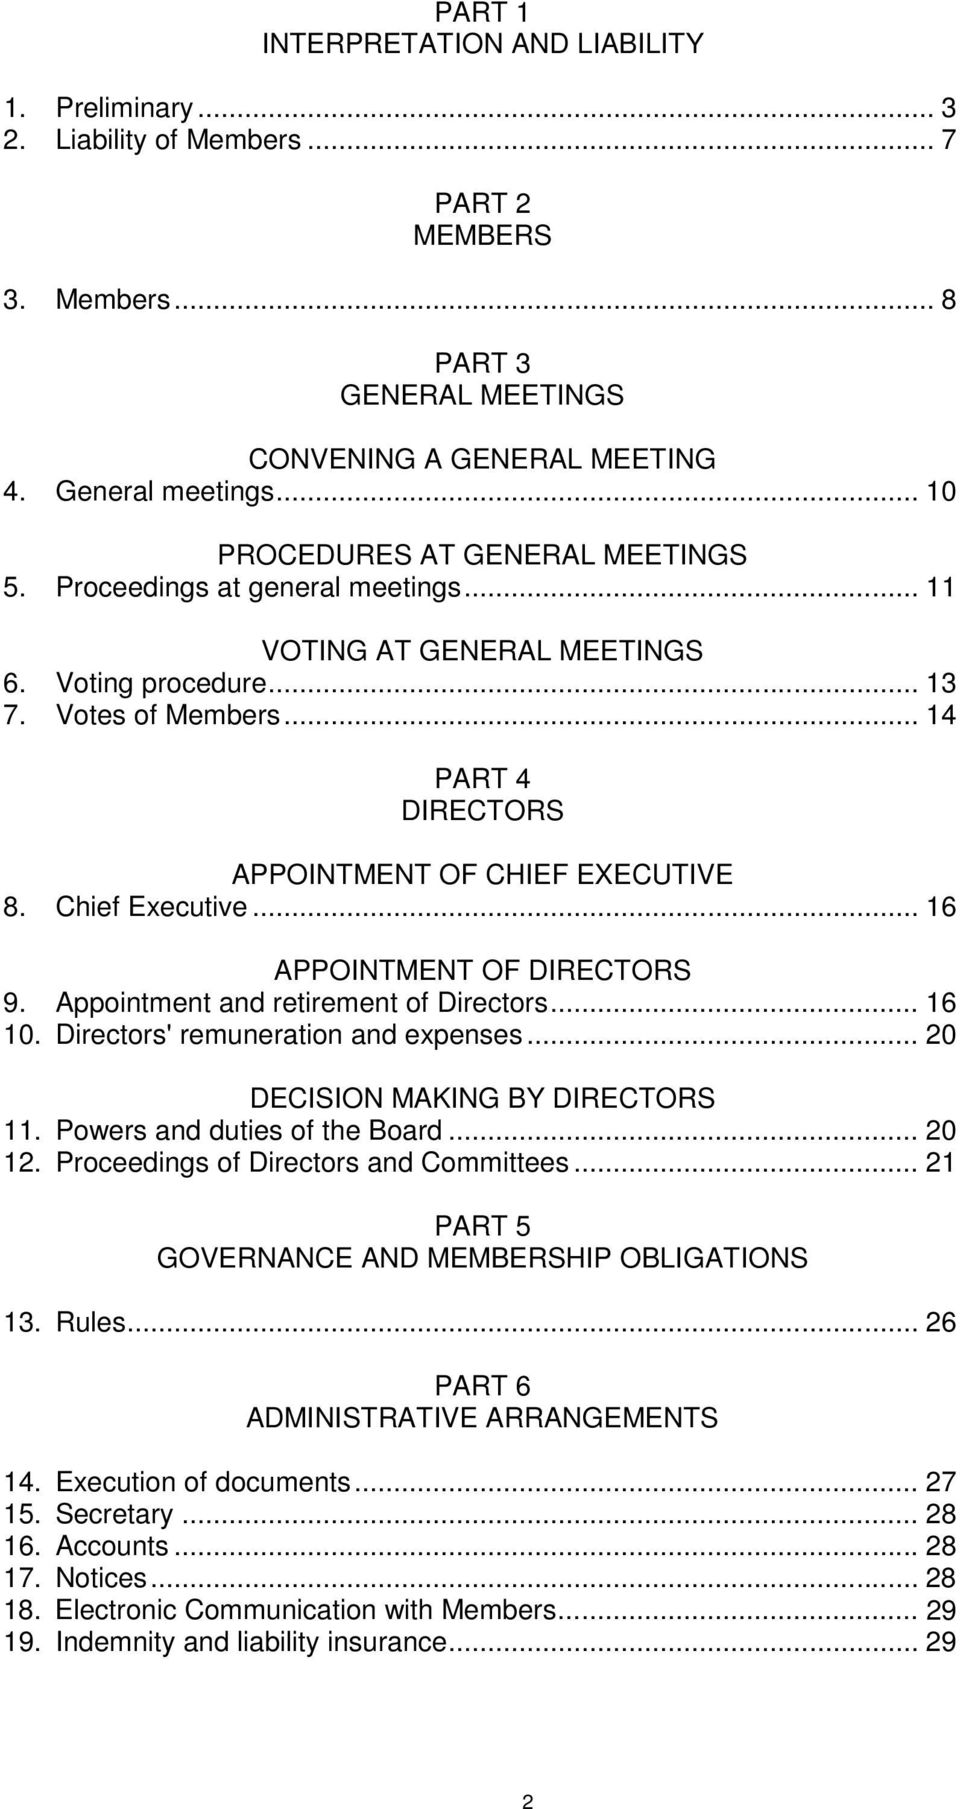 .. 14 PART 4 DIRECTORS APPOINTMENT OF CHIEF EXECUTIVE 8. Chief Executive... 16 APPOINTMENT OF DIRECTORS 9. Appointment and retirement of Directors... 16 10. Directors' remuneration and expenses.